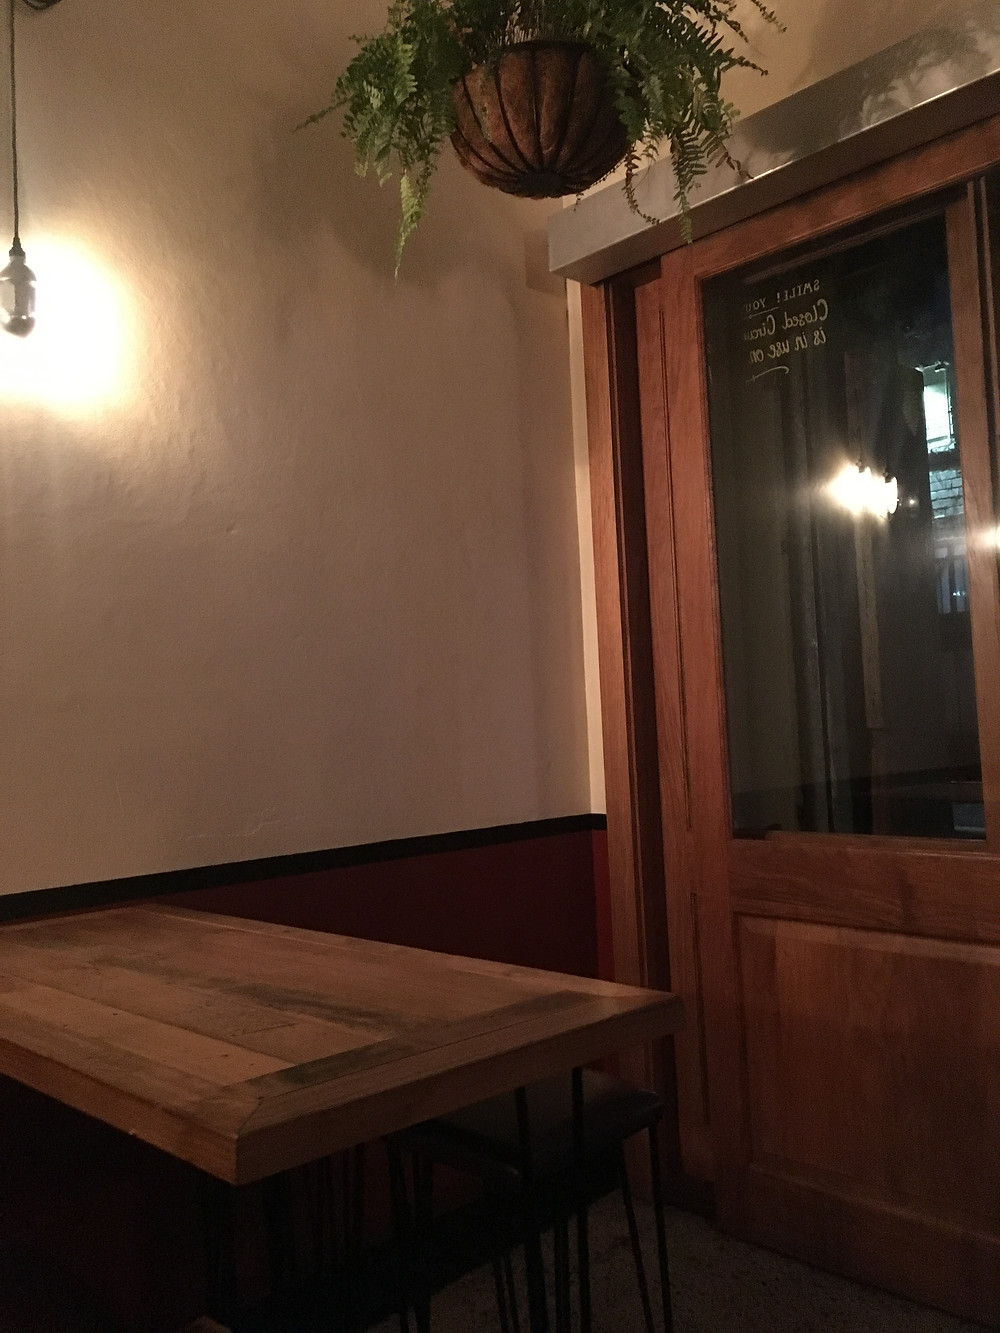 clovar-creative-lps-quality-meats-chippendale-interior-plants